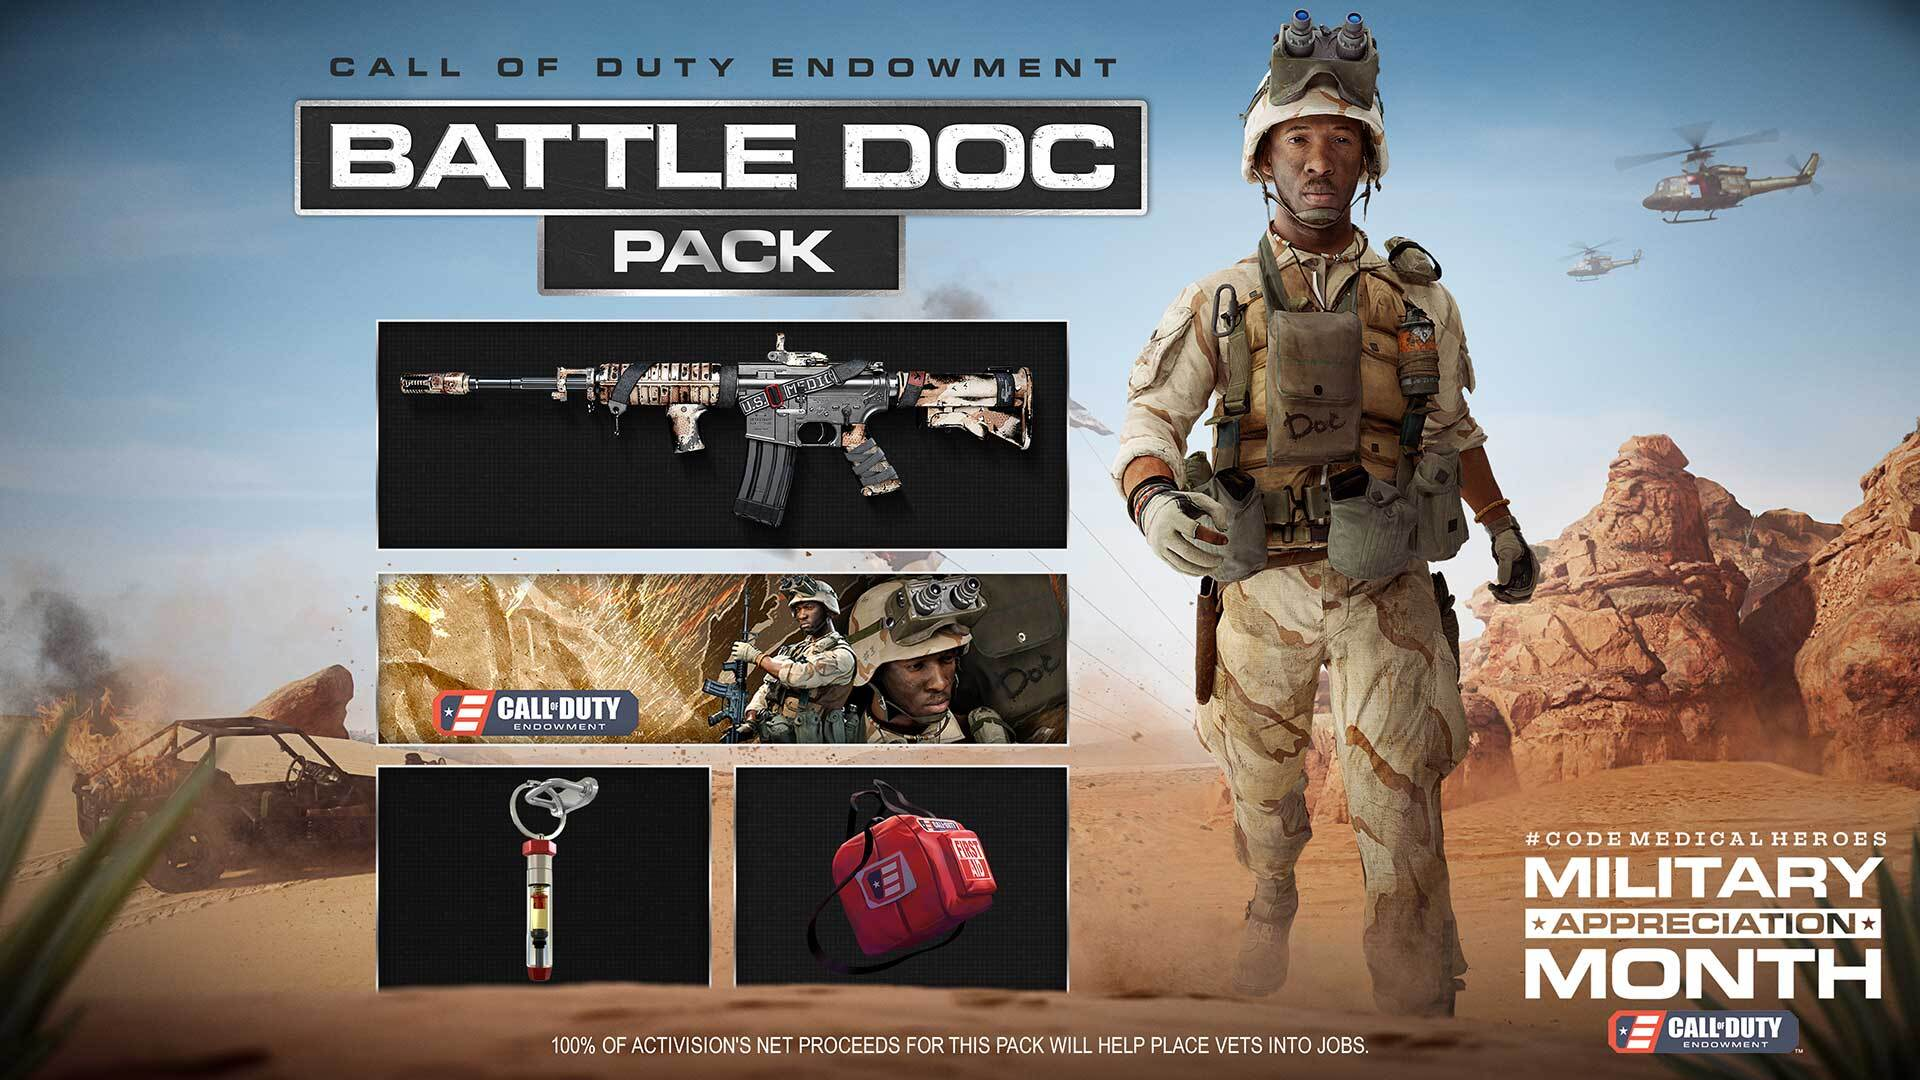 Call of duty endowment C.O.D.E. Battle Doc Pack warzone black ops cold war